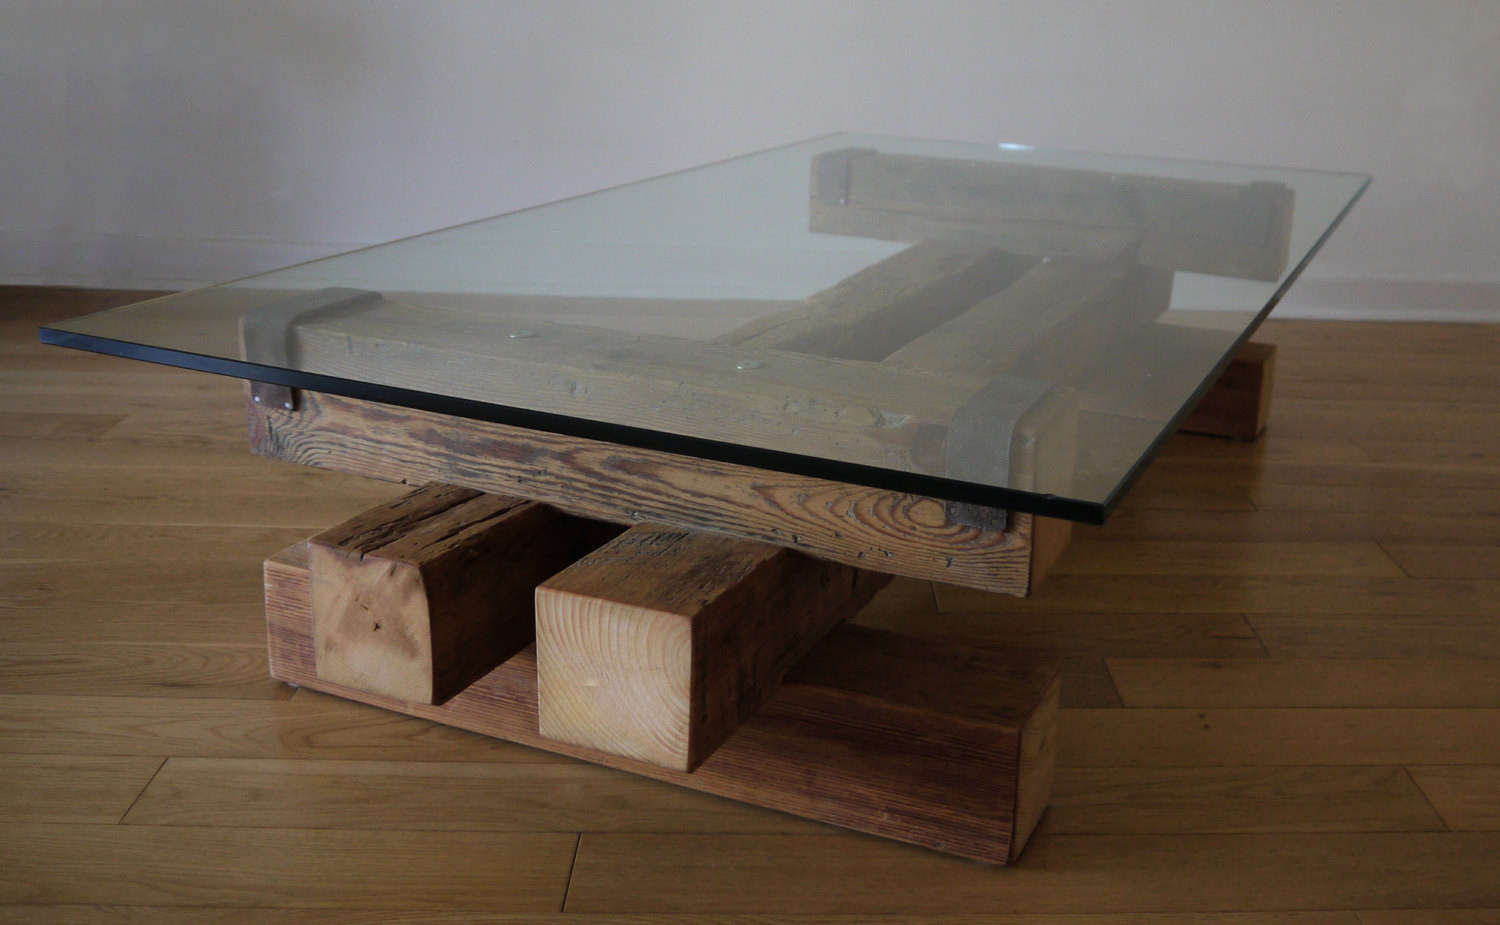 Best ideas about Wood And Glass Coffee Table . Save or Pin Reclaimed Wood and Glass Coffee Table Barn Wood Coffee Table Now.